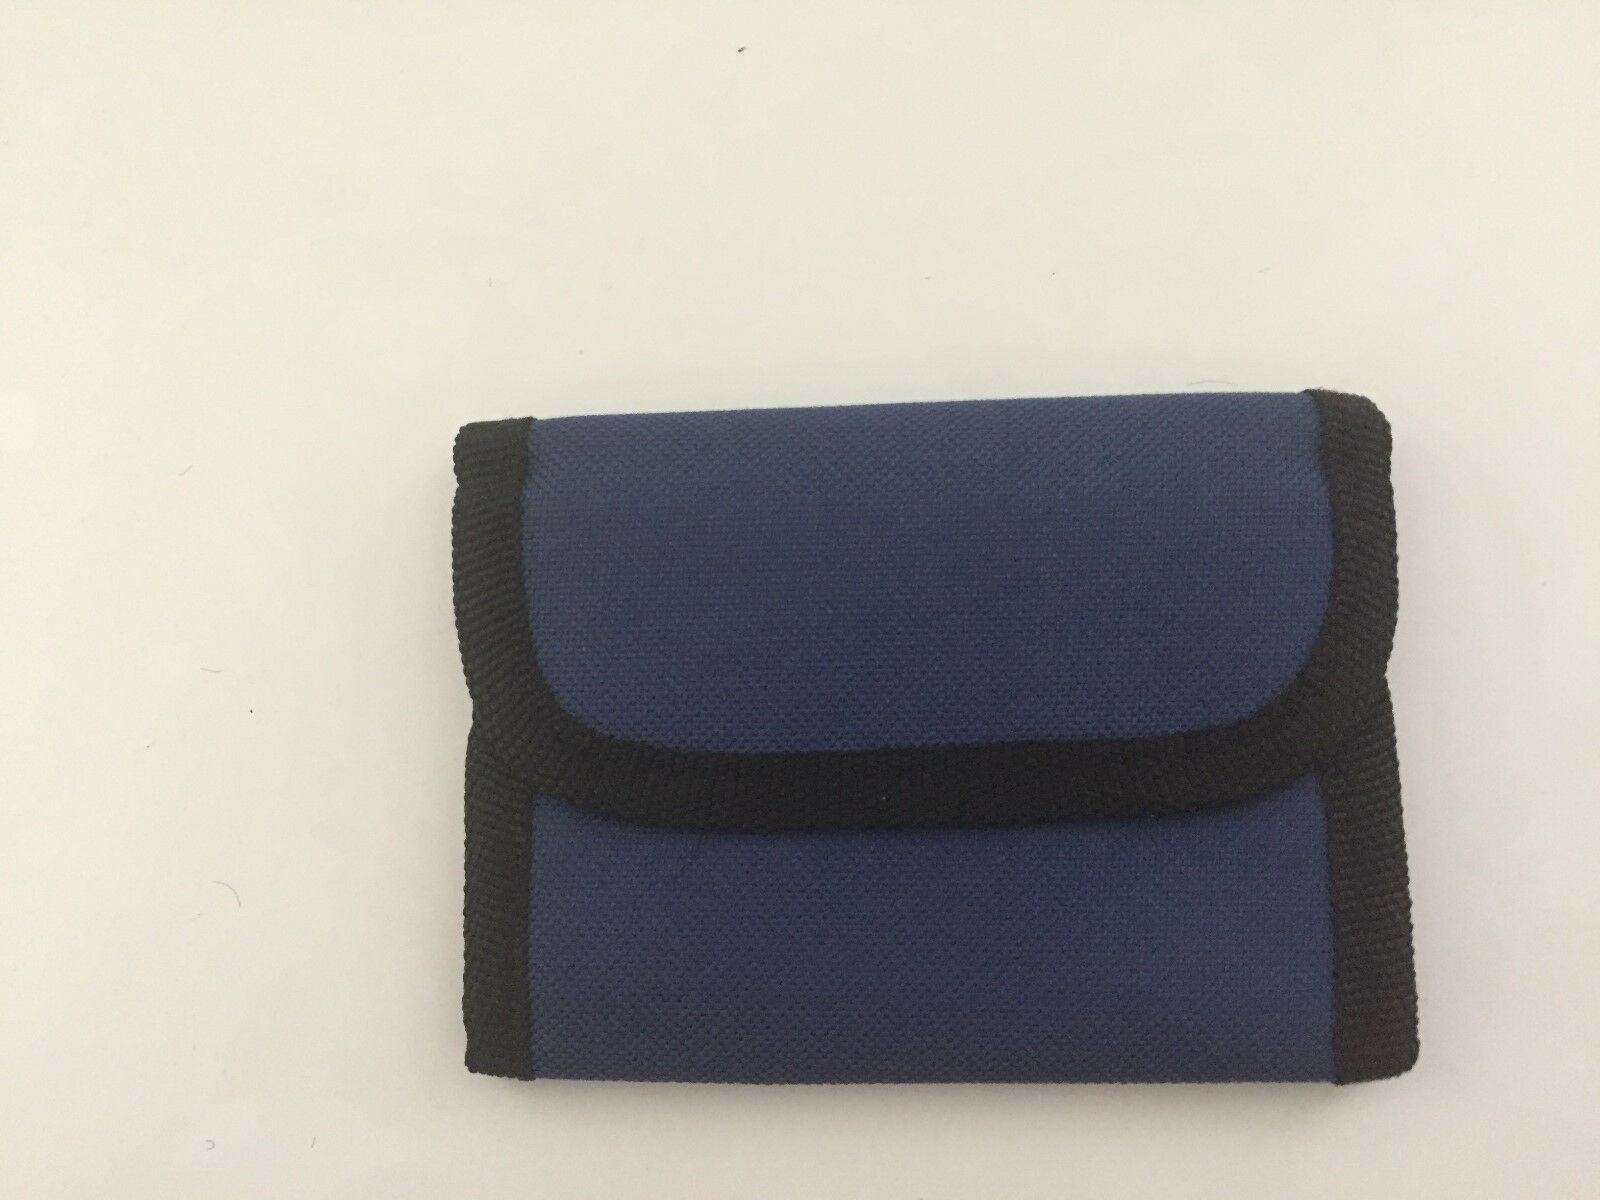 2-Soft Sided Unisex Wallet with Belt Strap-Navy